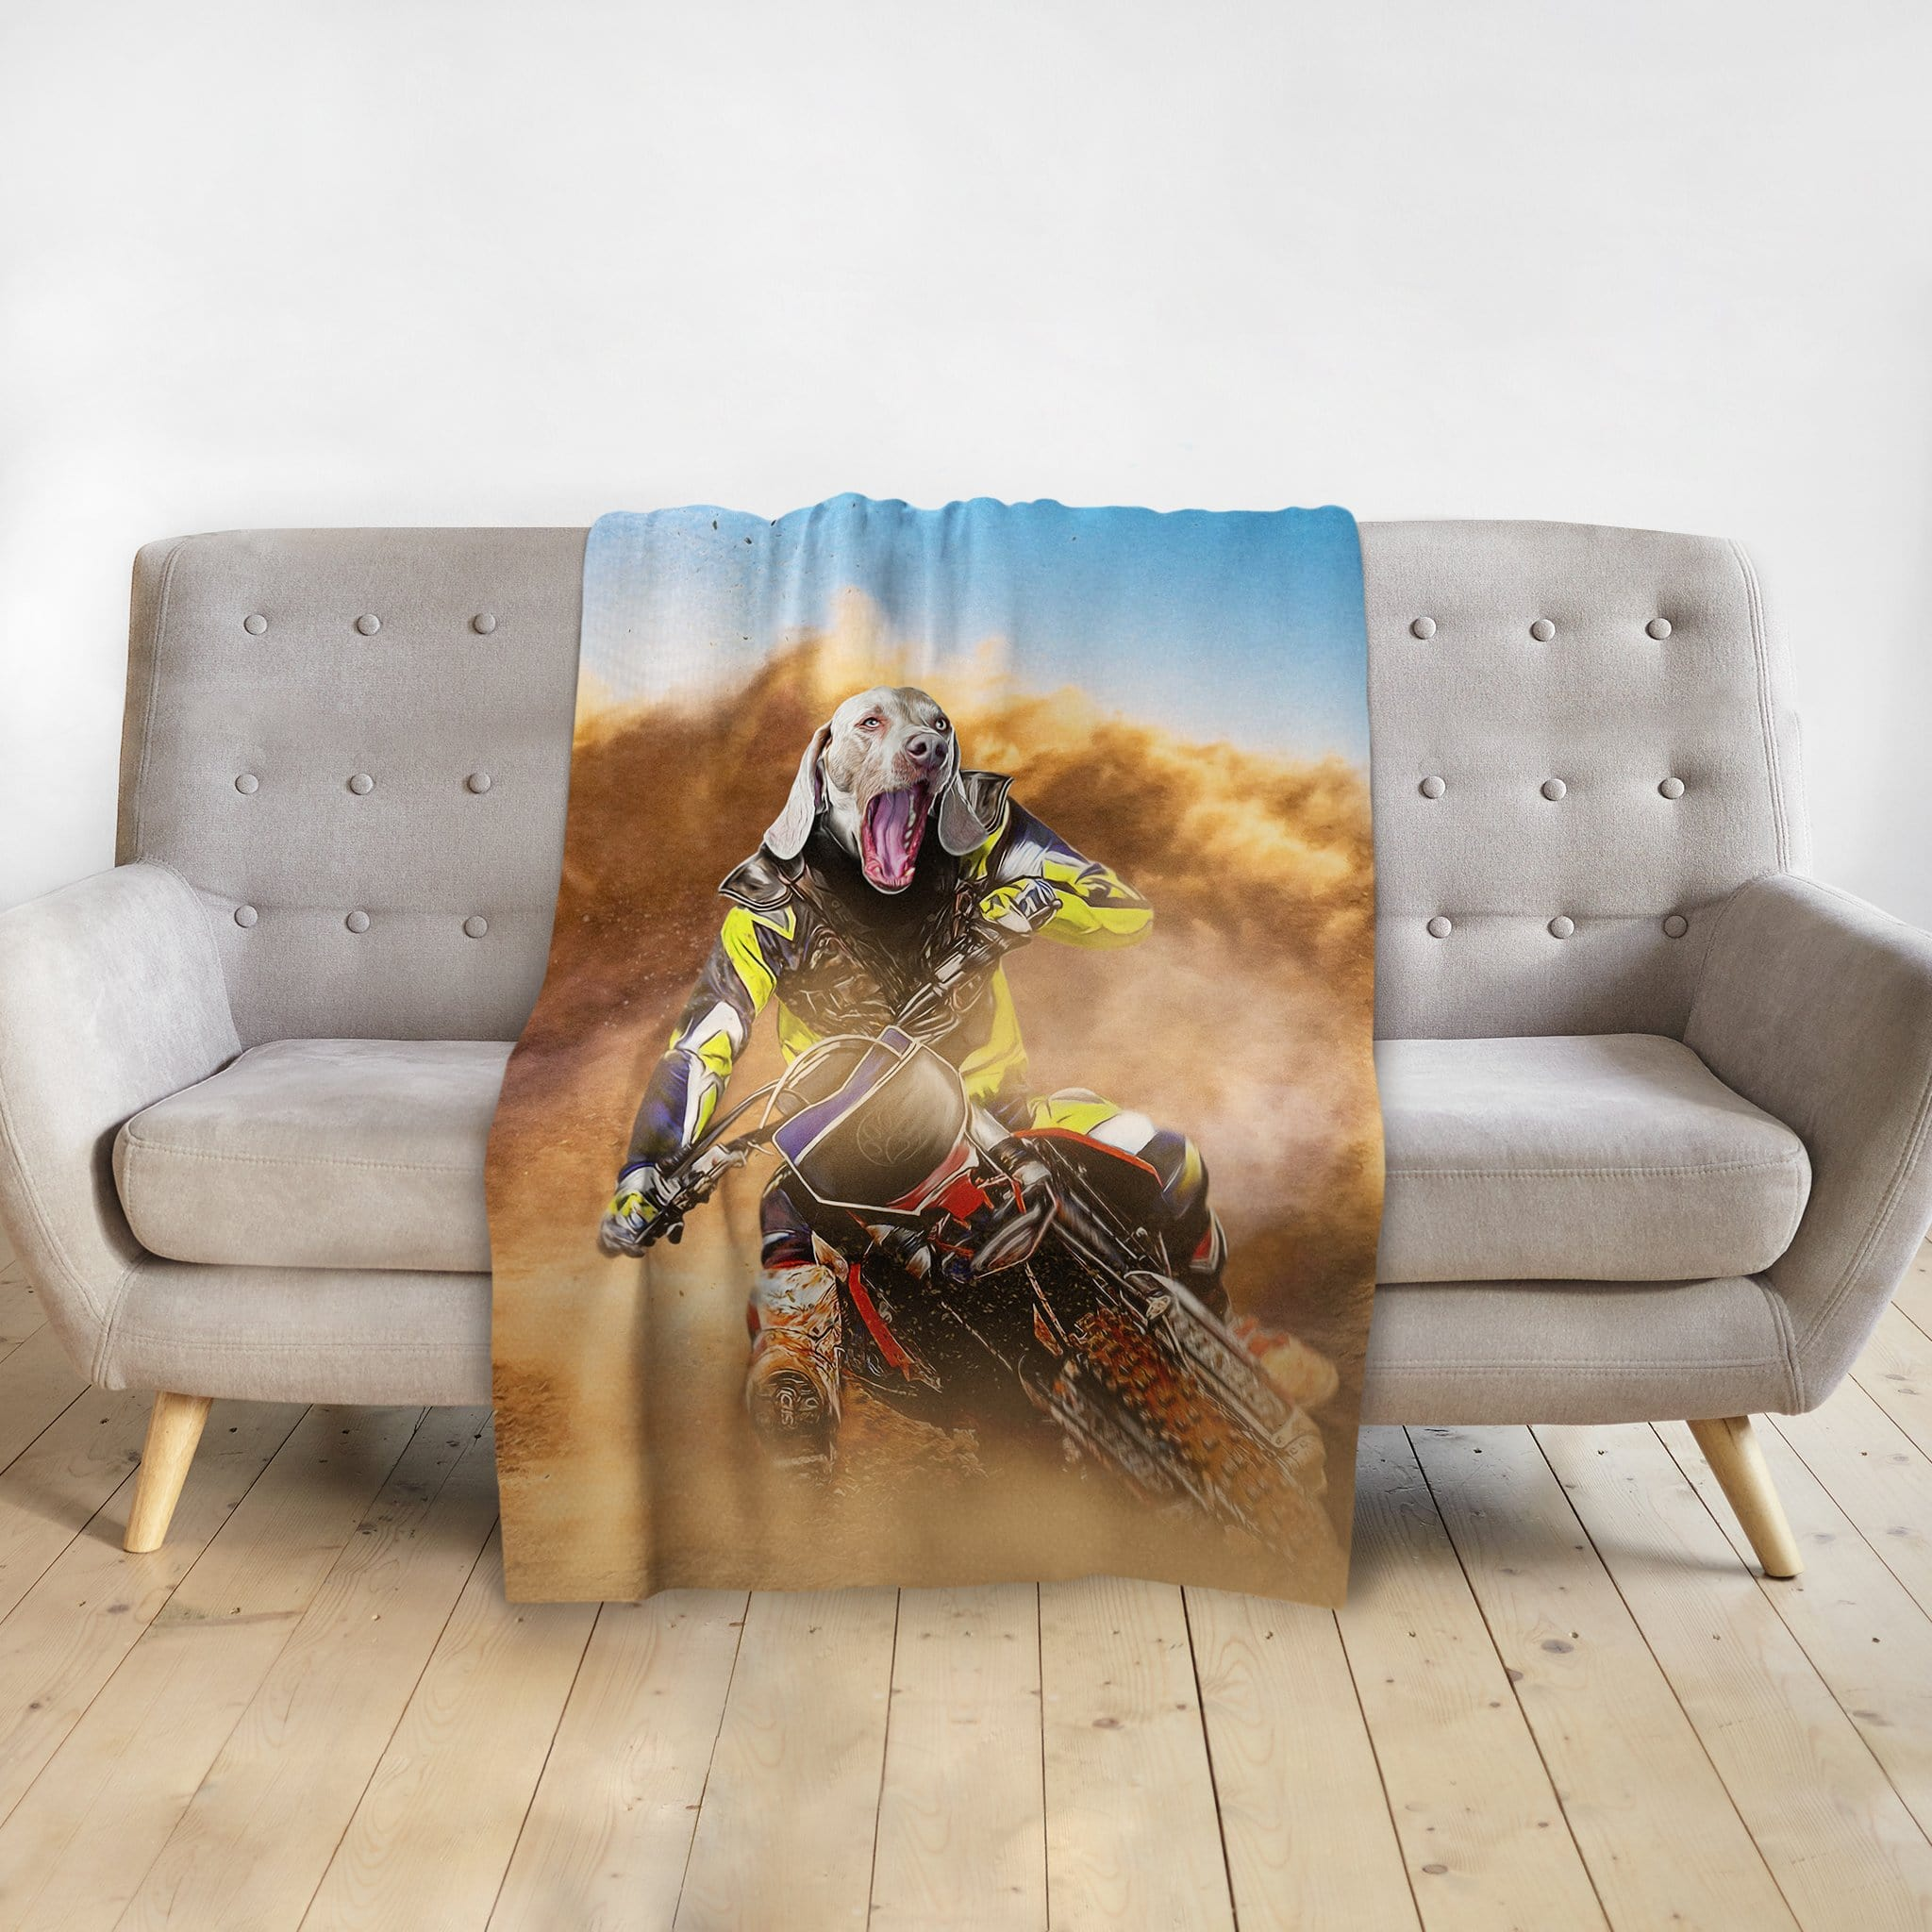 'The Motocross Rider' Personalized Pet Blanket